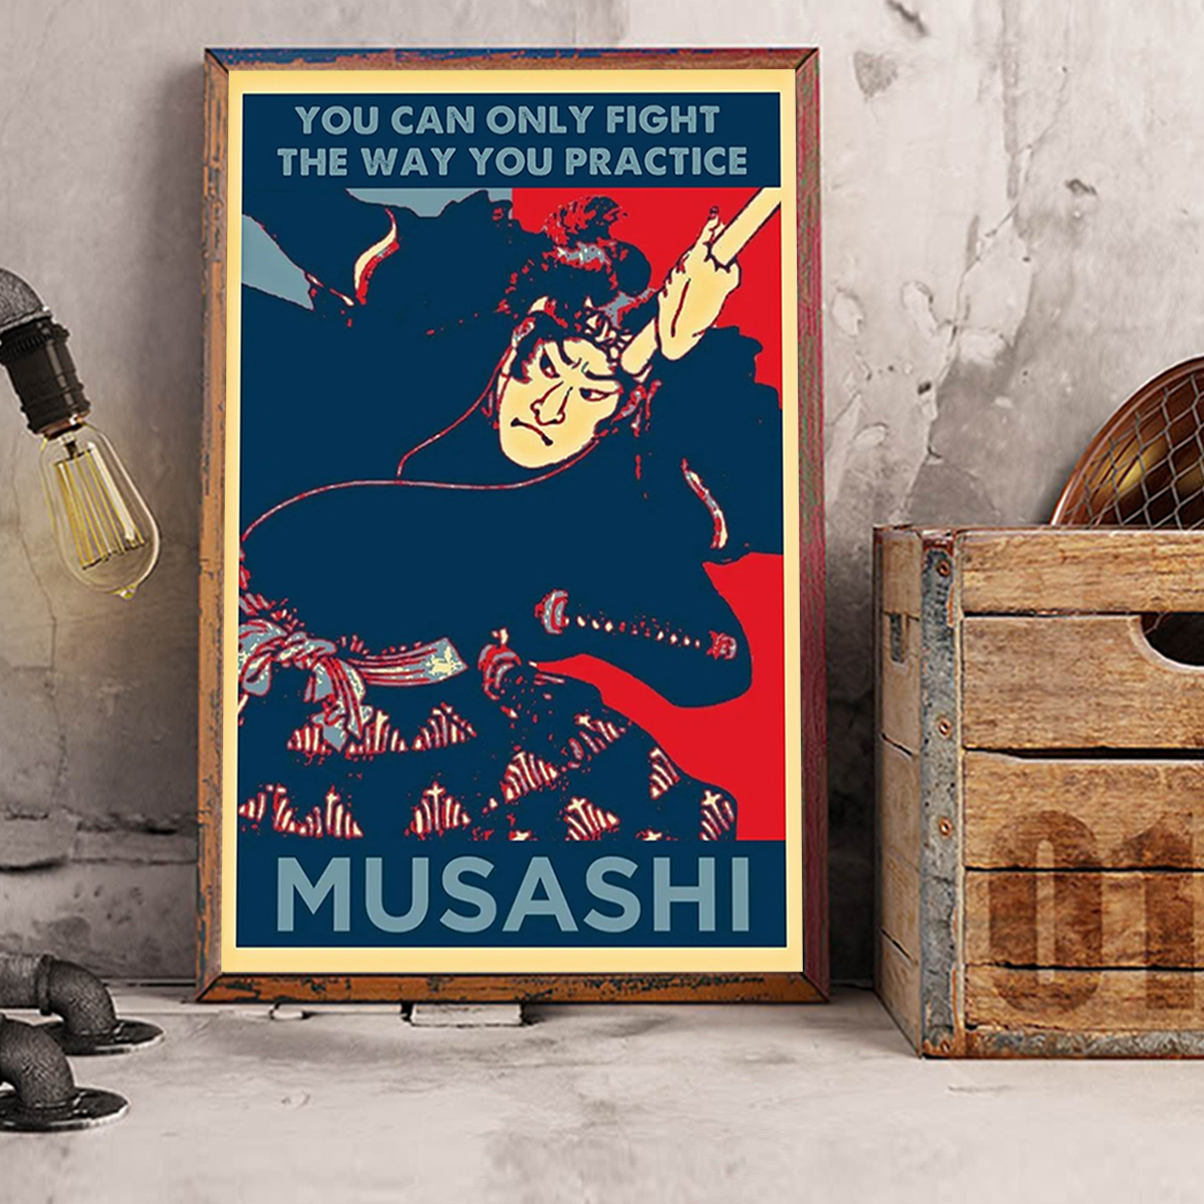 Samurai you can only fight the way you practice musashi poster A2